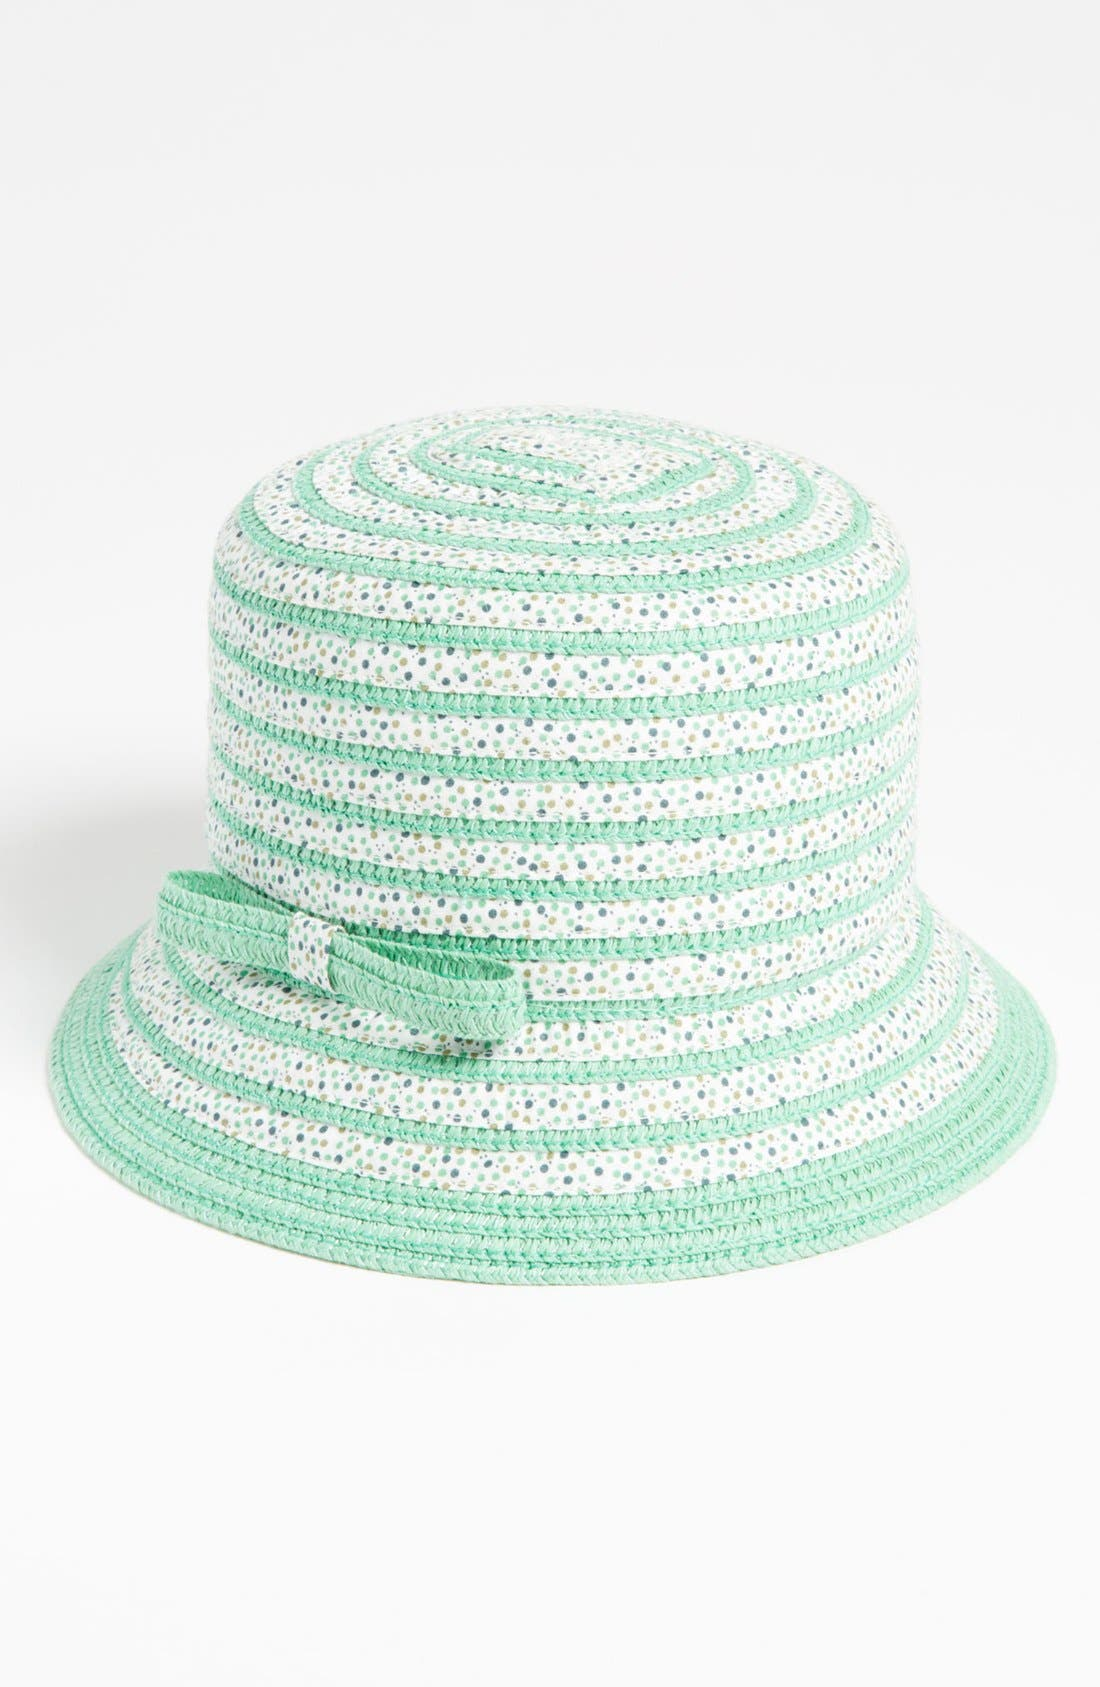 Alternate Image 1 Selected - Nordstrom 'Bow' Bucket Hat